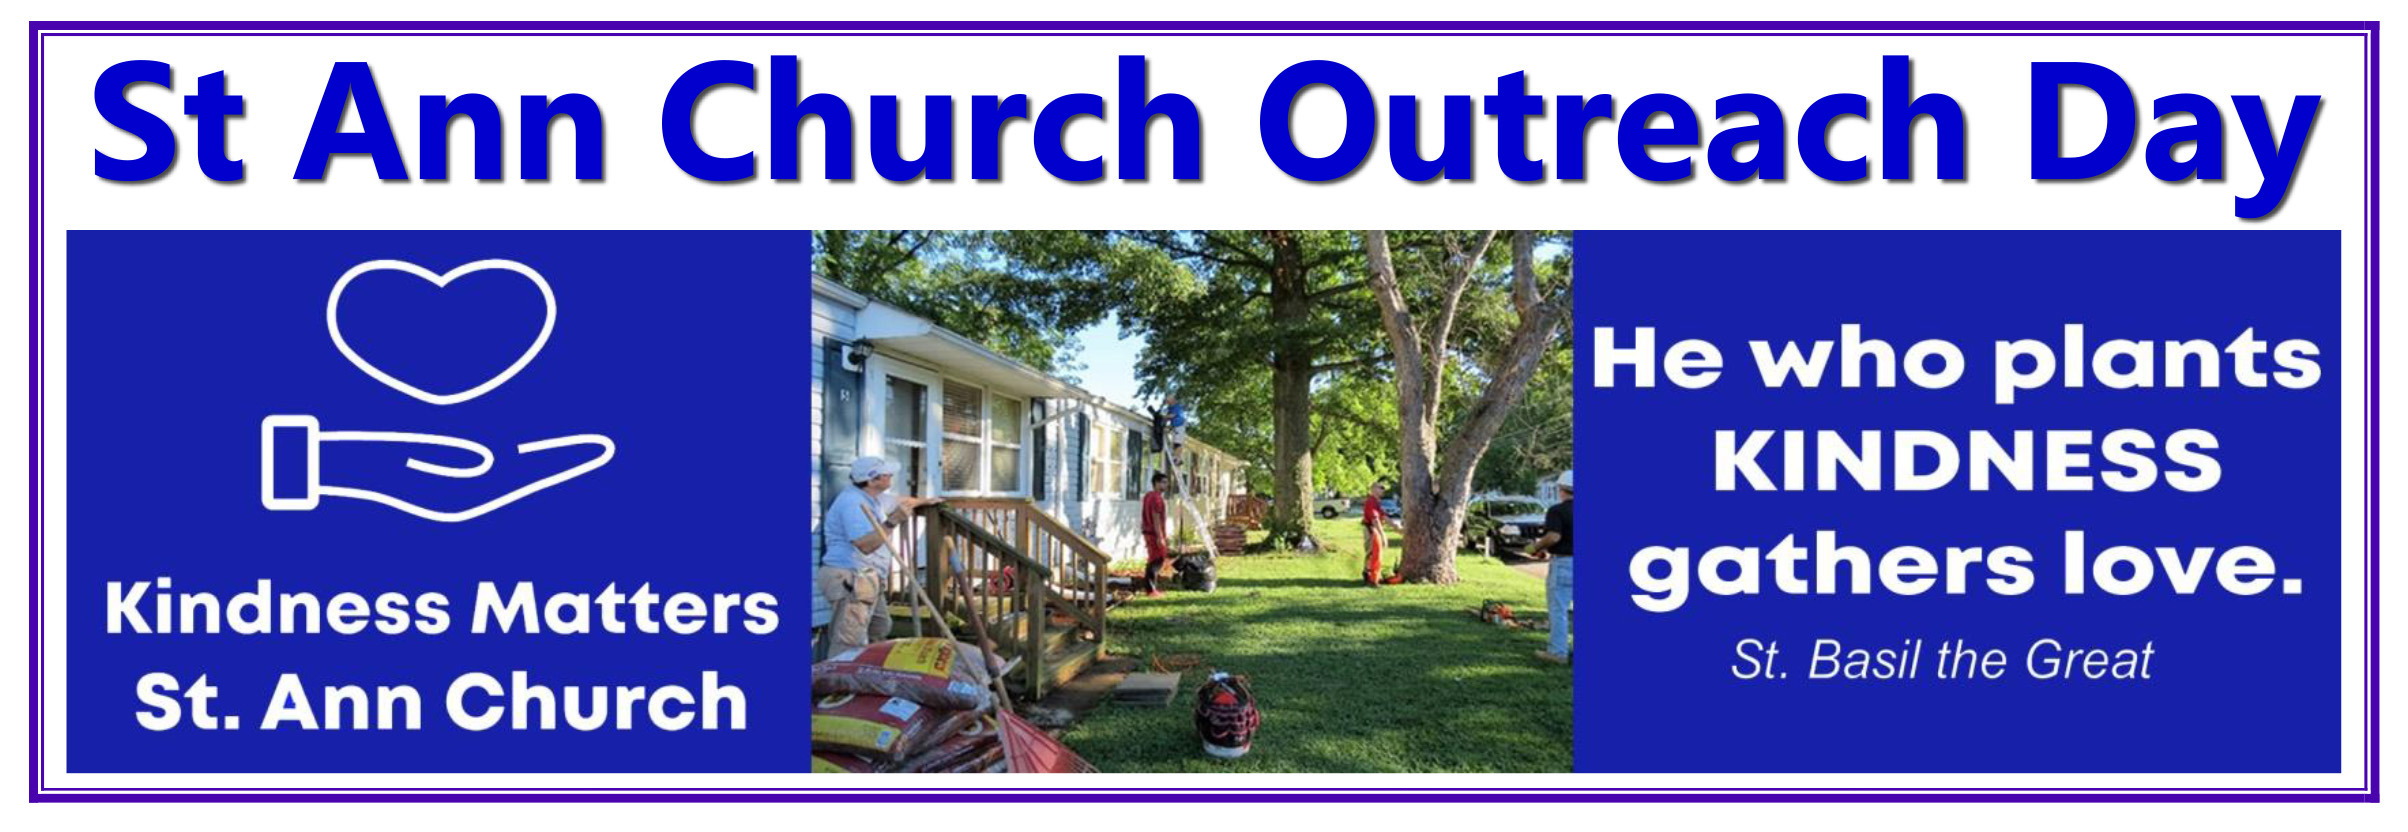 Volunteers Needed for Outreach Day - May 22, 2021